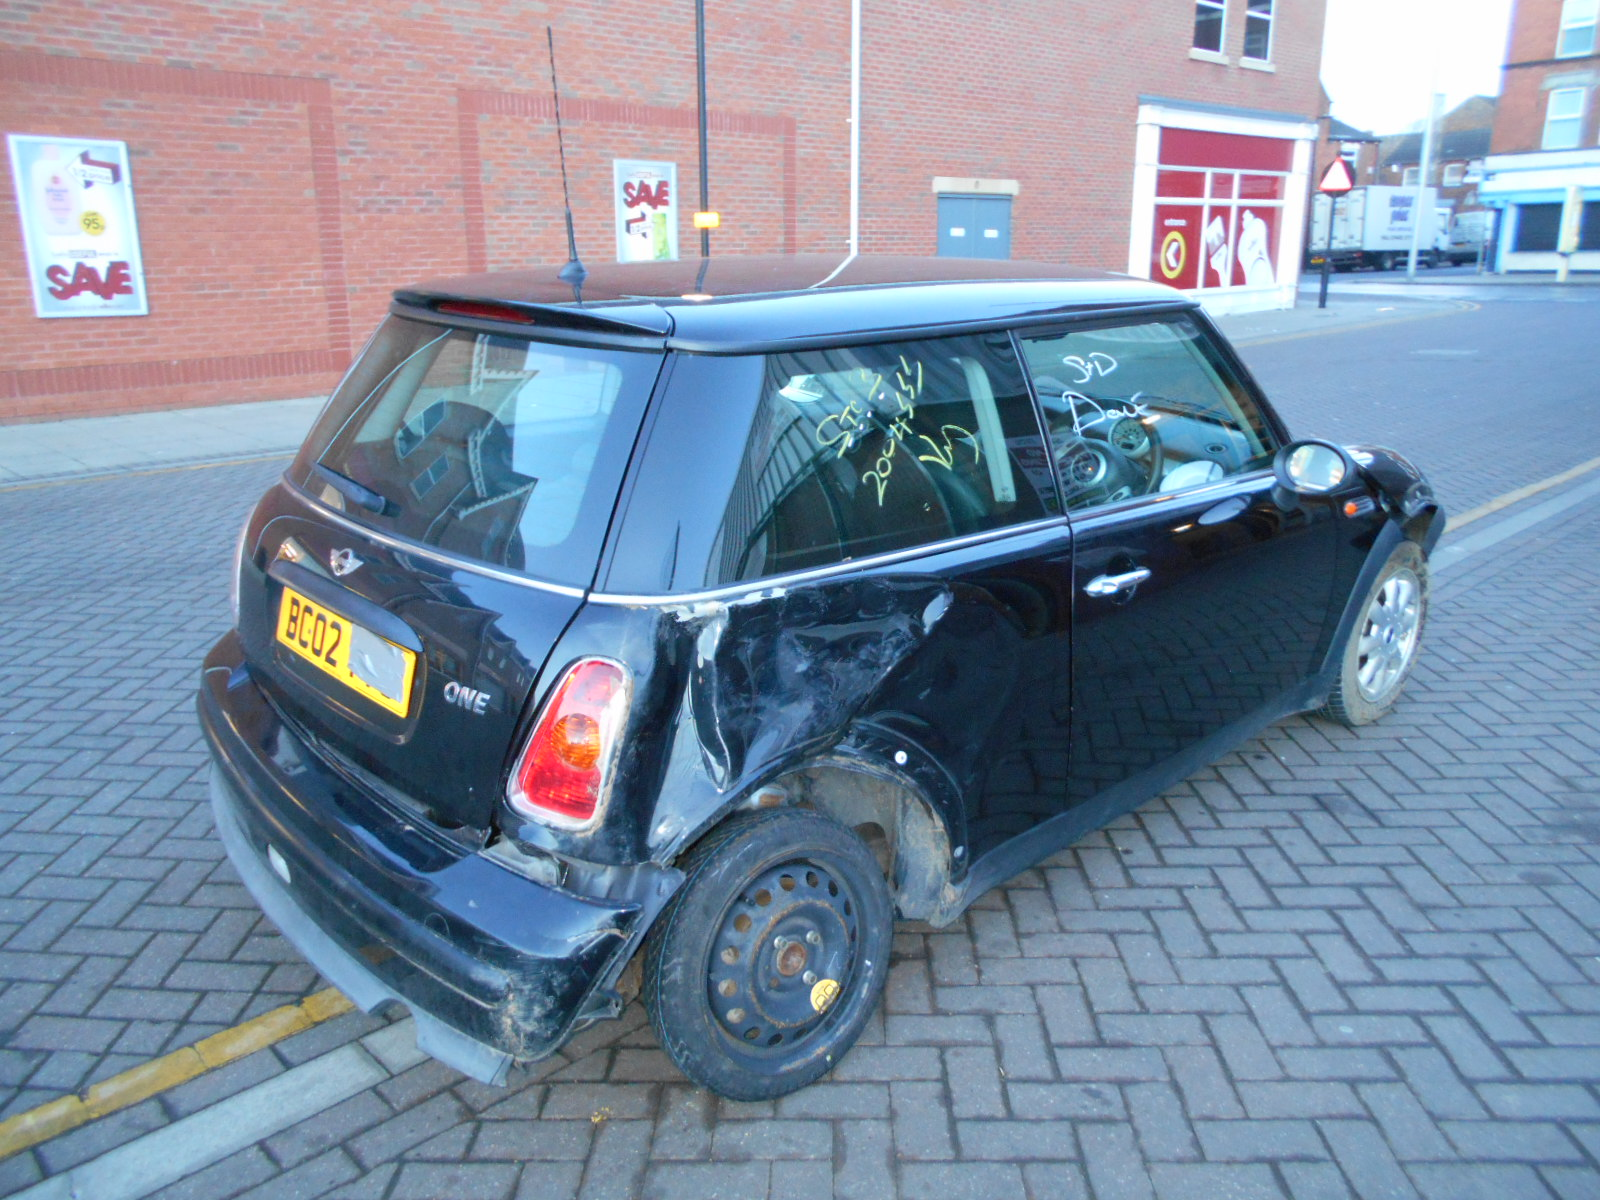 02 Black 1.6 BMW Mini One - 4